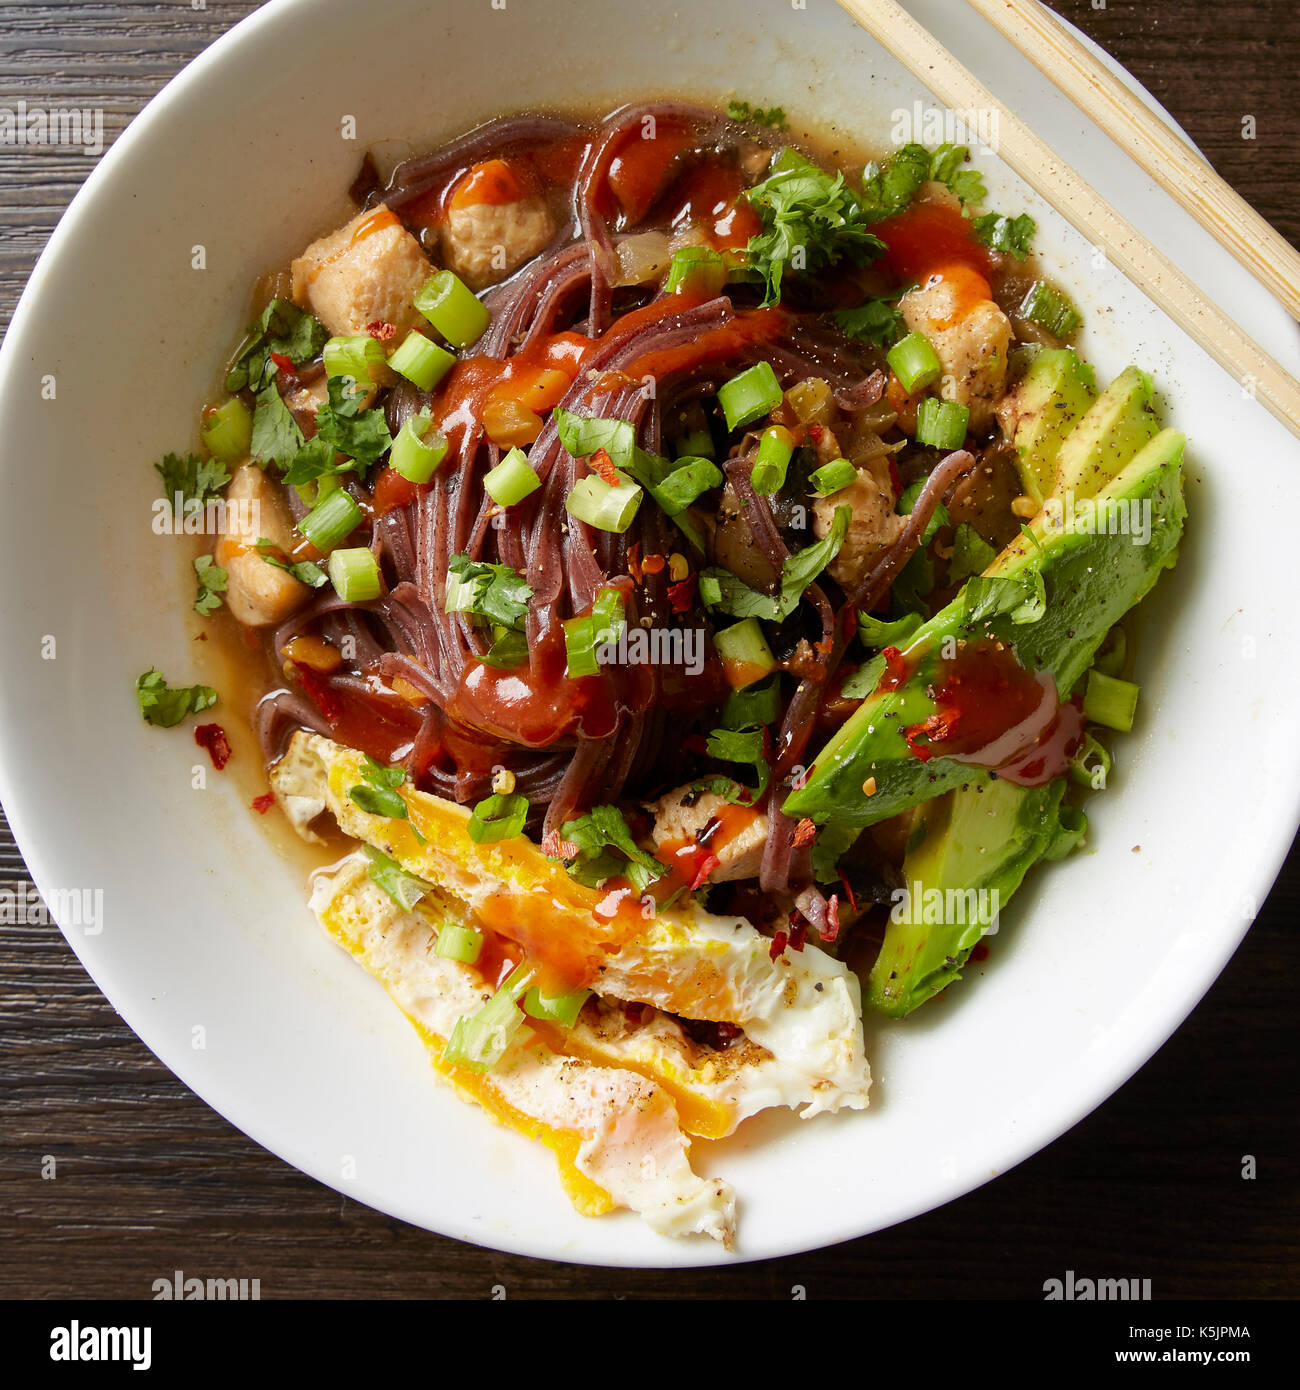 White bowl of chicken and veggie Pho with egg, avocado and sriracha - Stock Image